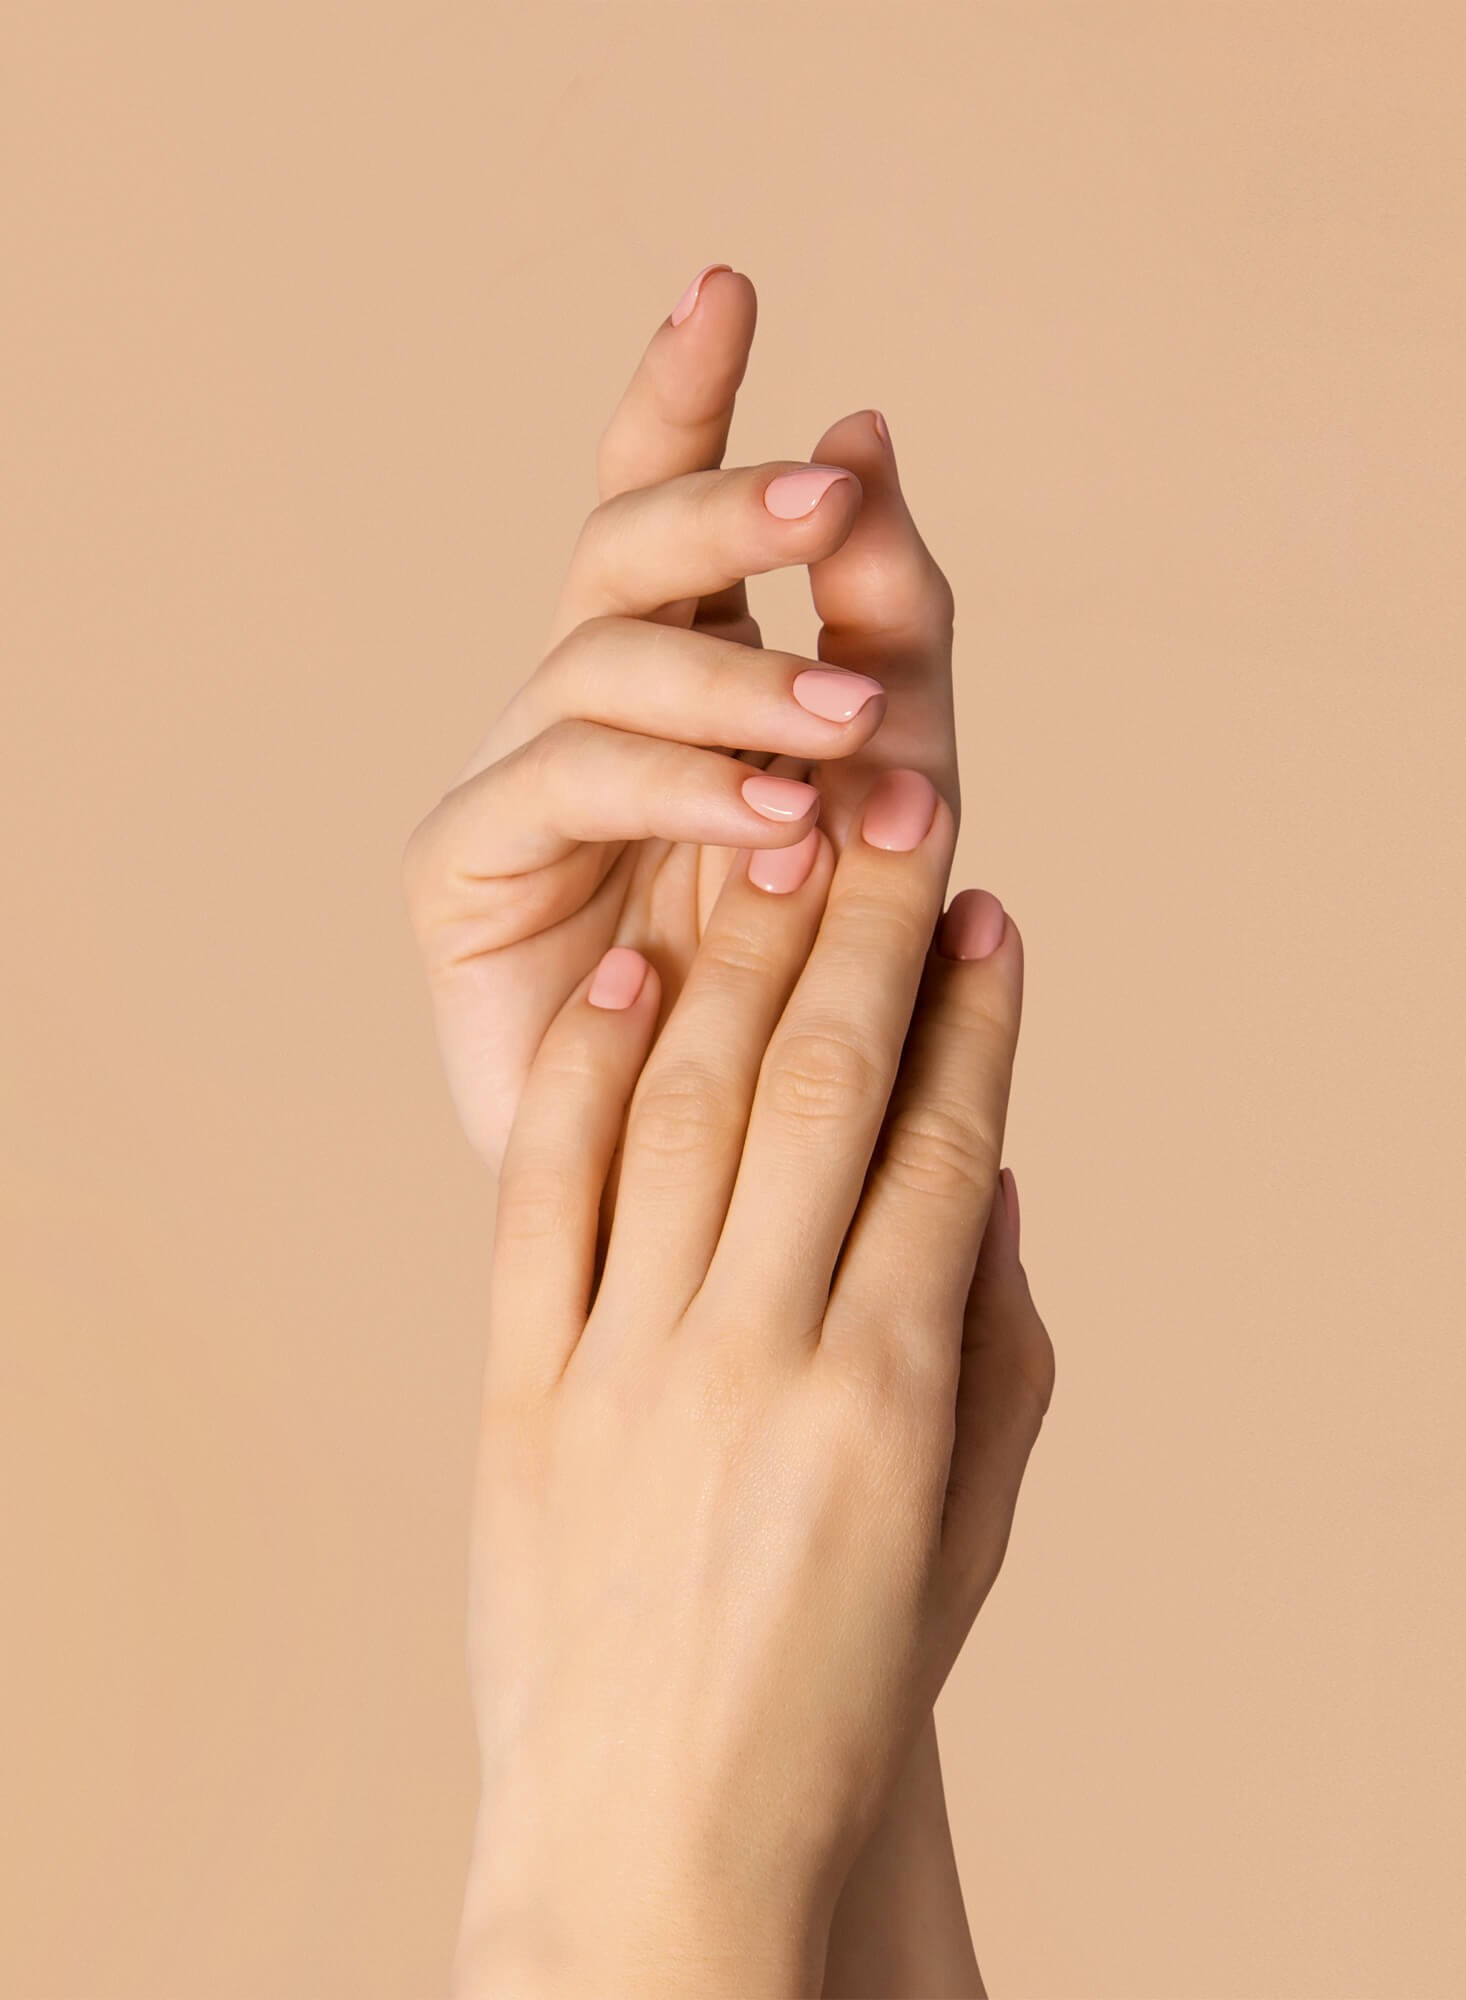 Womans manicured hands, posing one over the other with pink nail polish on a beige background